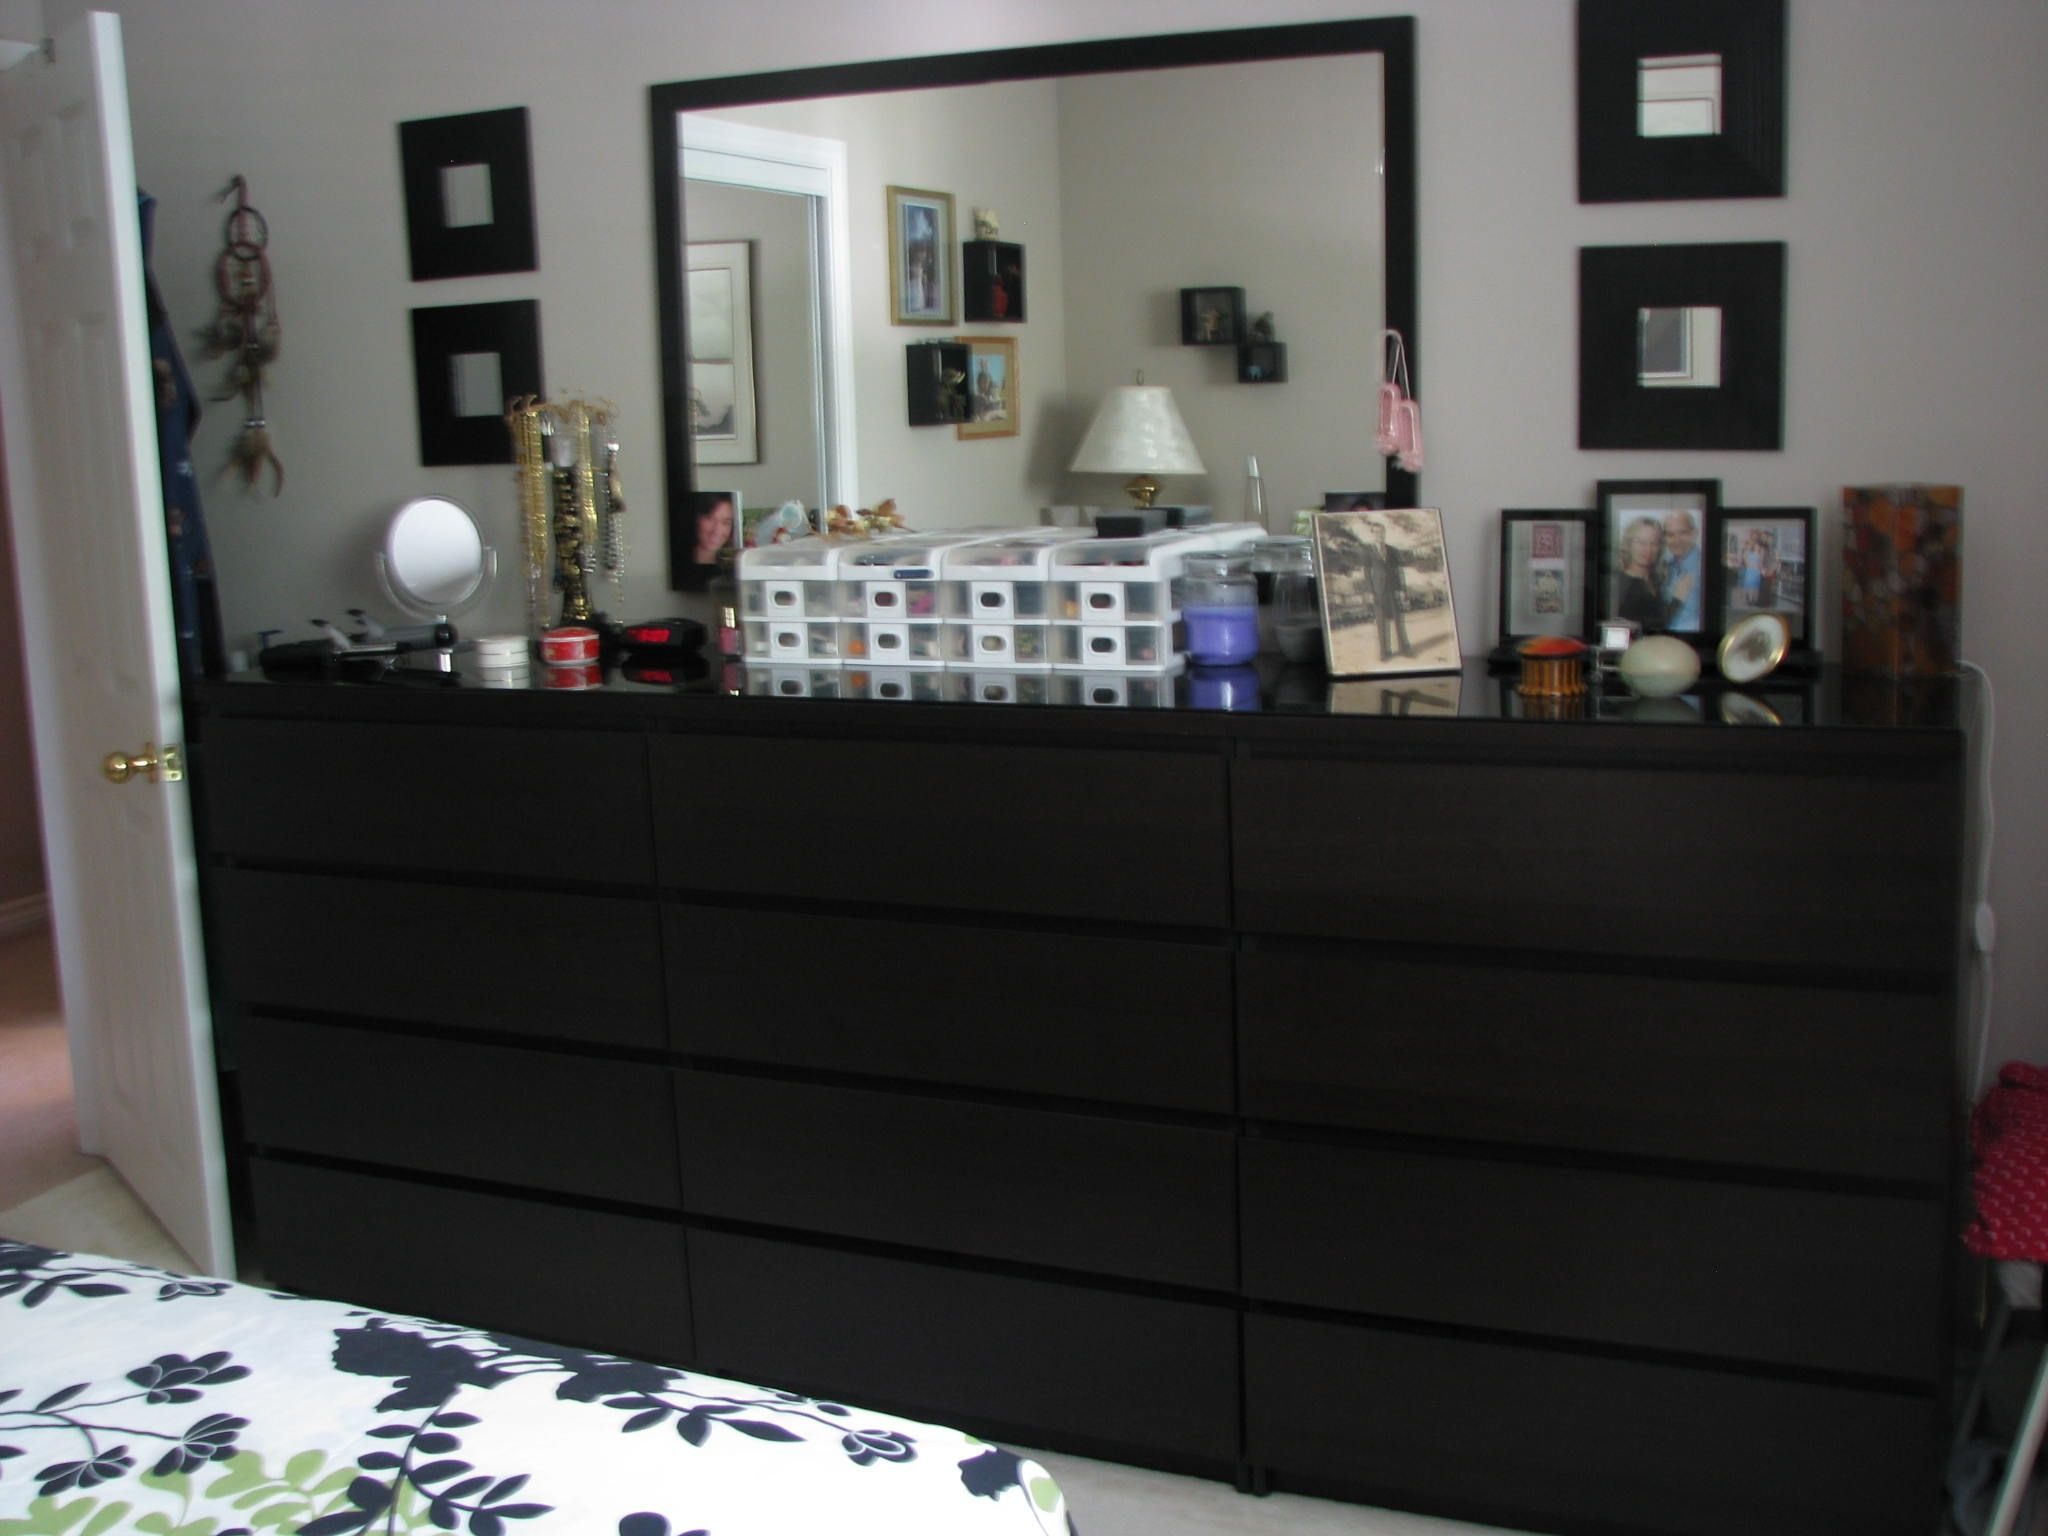 Ikea malm 4 drawer dresser - Ikea Is Not So Bad 3 X 4 Drawer Malm Dressers In Brown Black